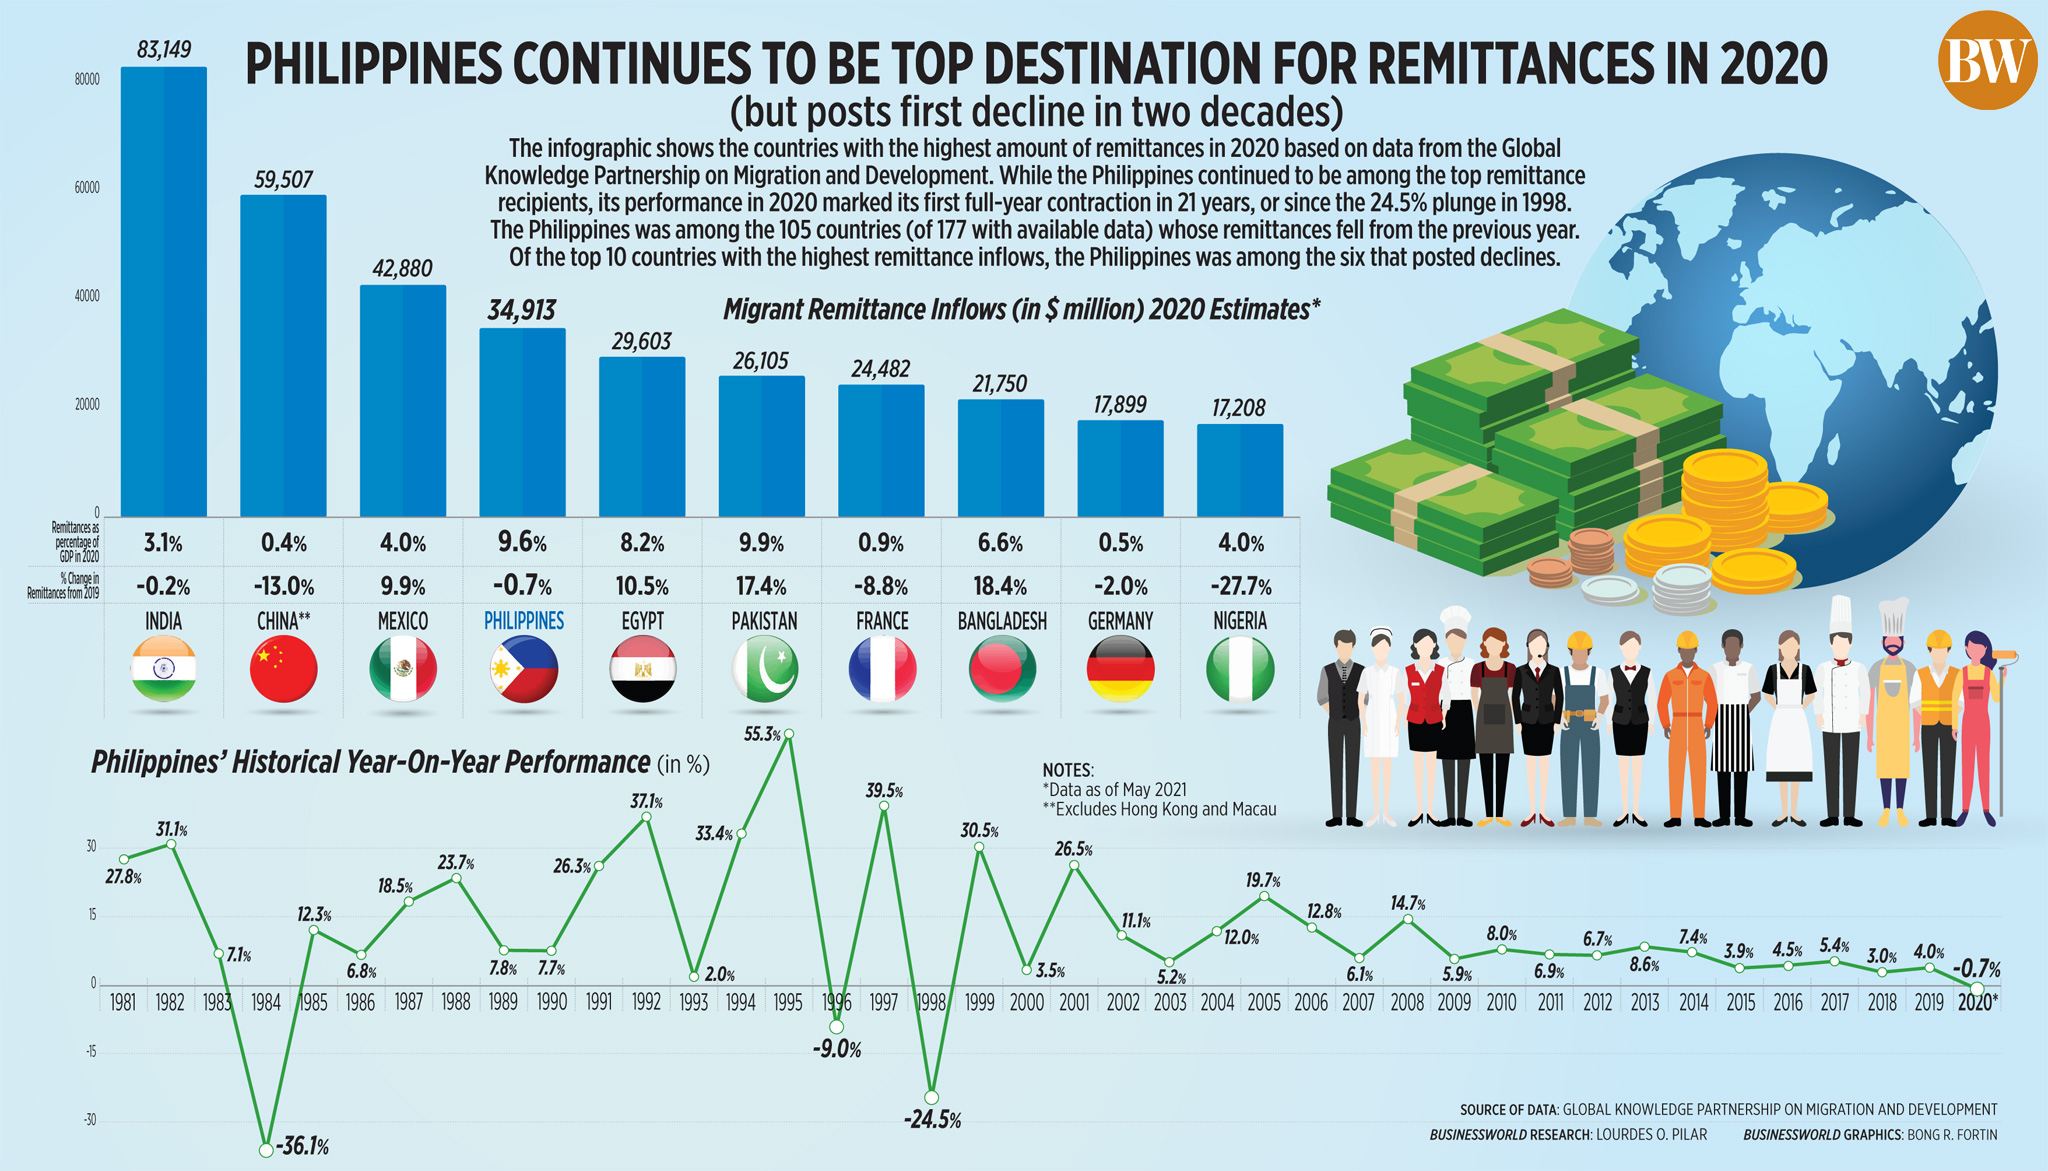 Philippines continues to be top destination for remittances in 2020